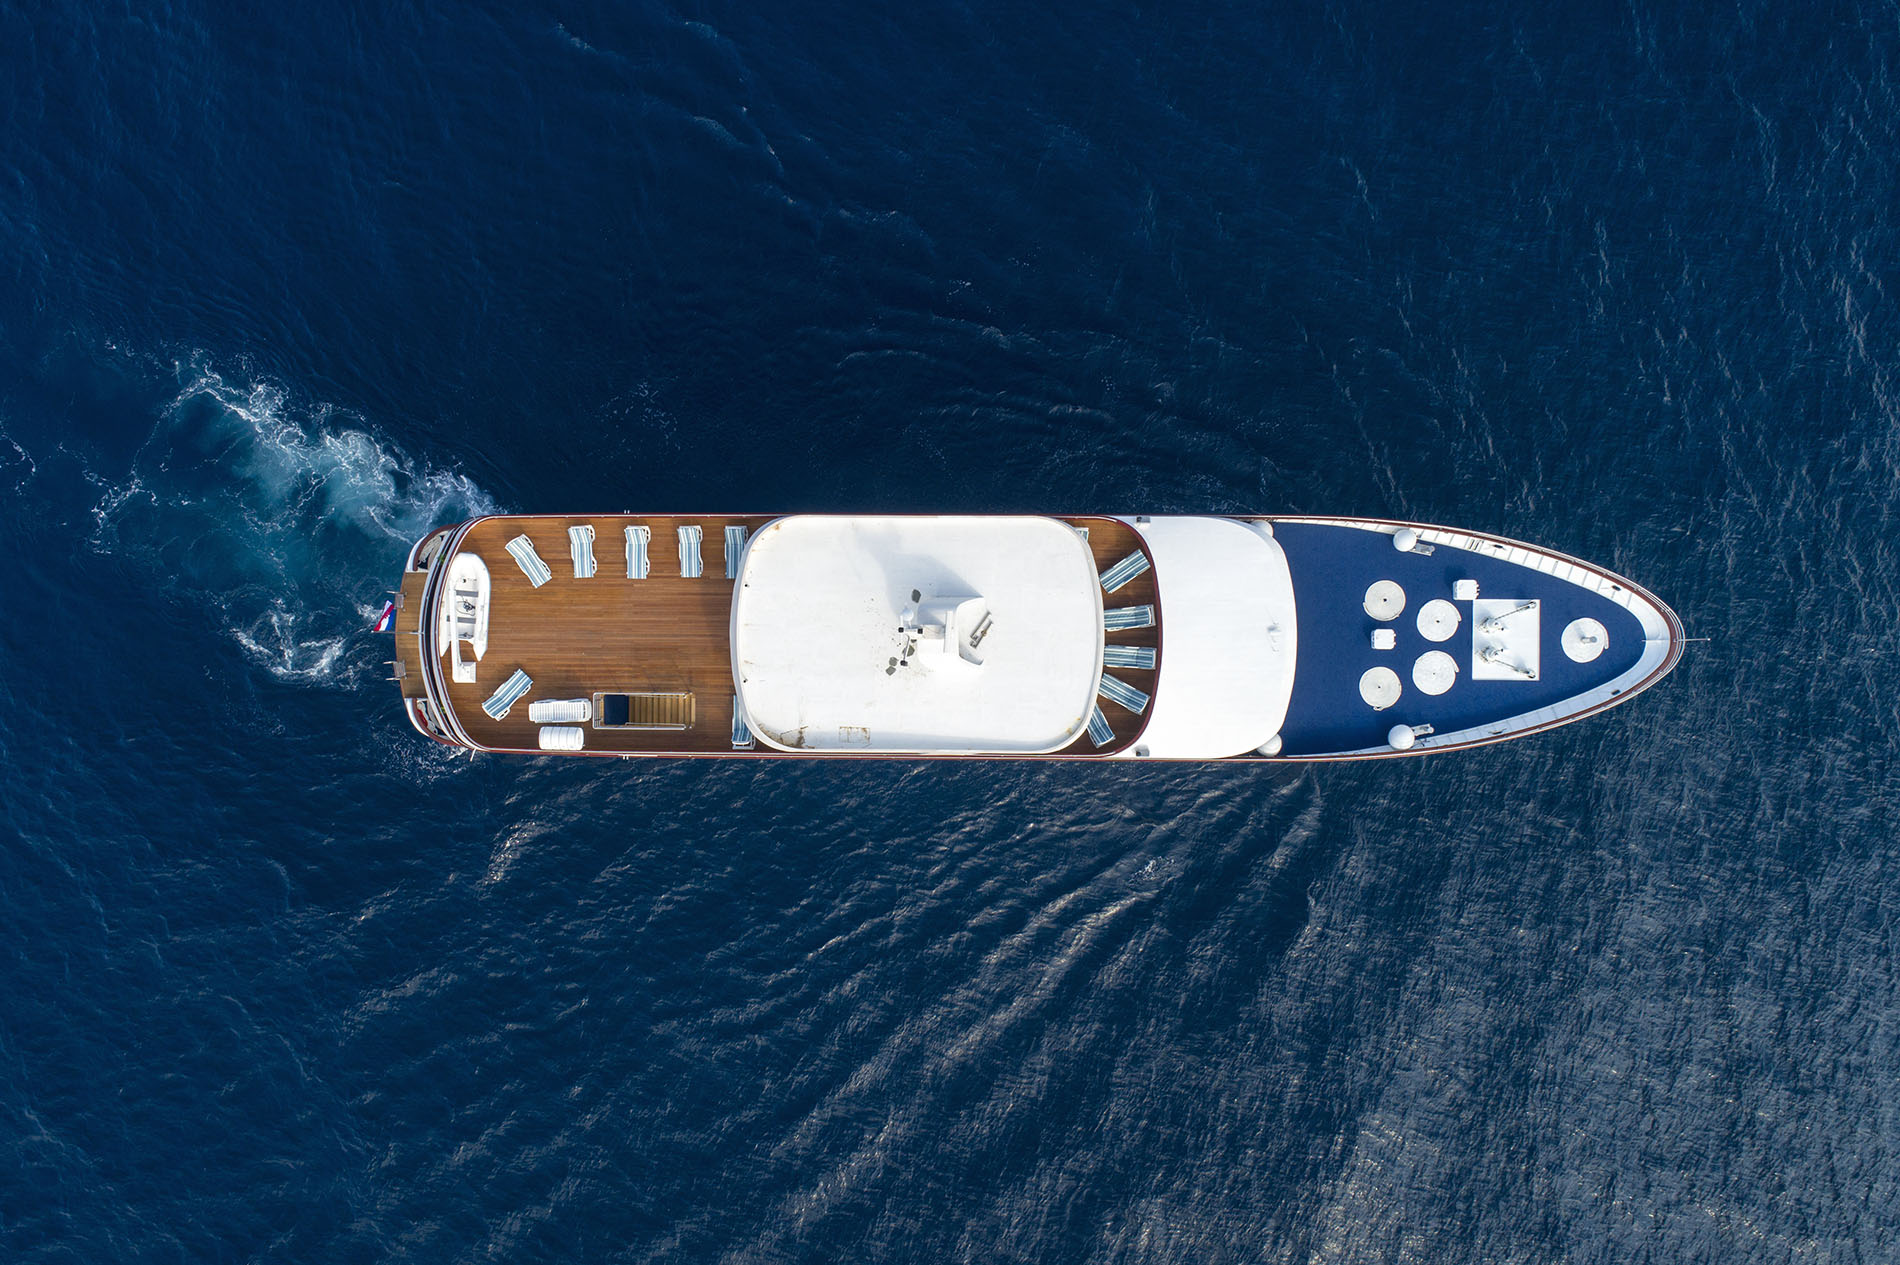 Adriatic Princess from above